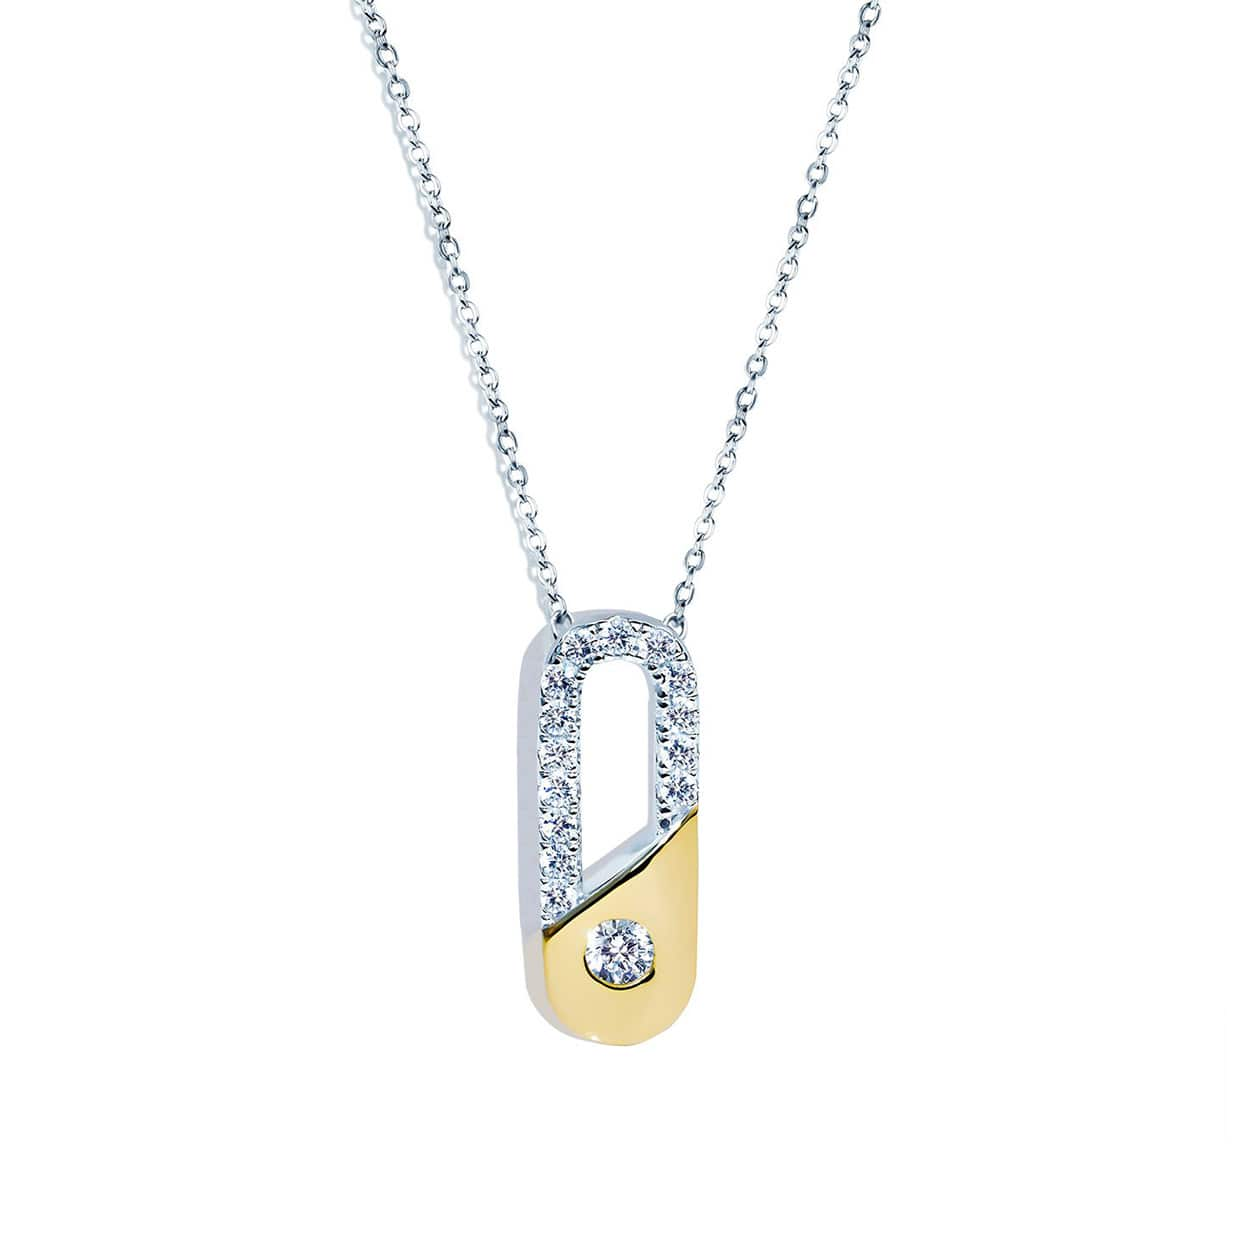 Abelstedt A Gold & Silver Clip Necklace - Abelstedt